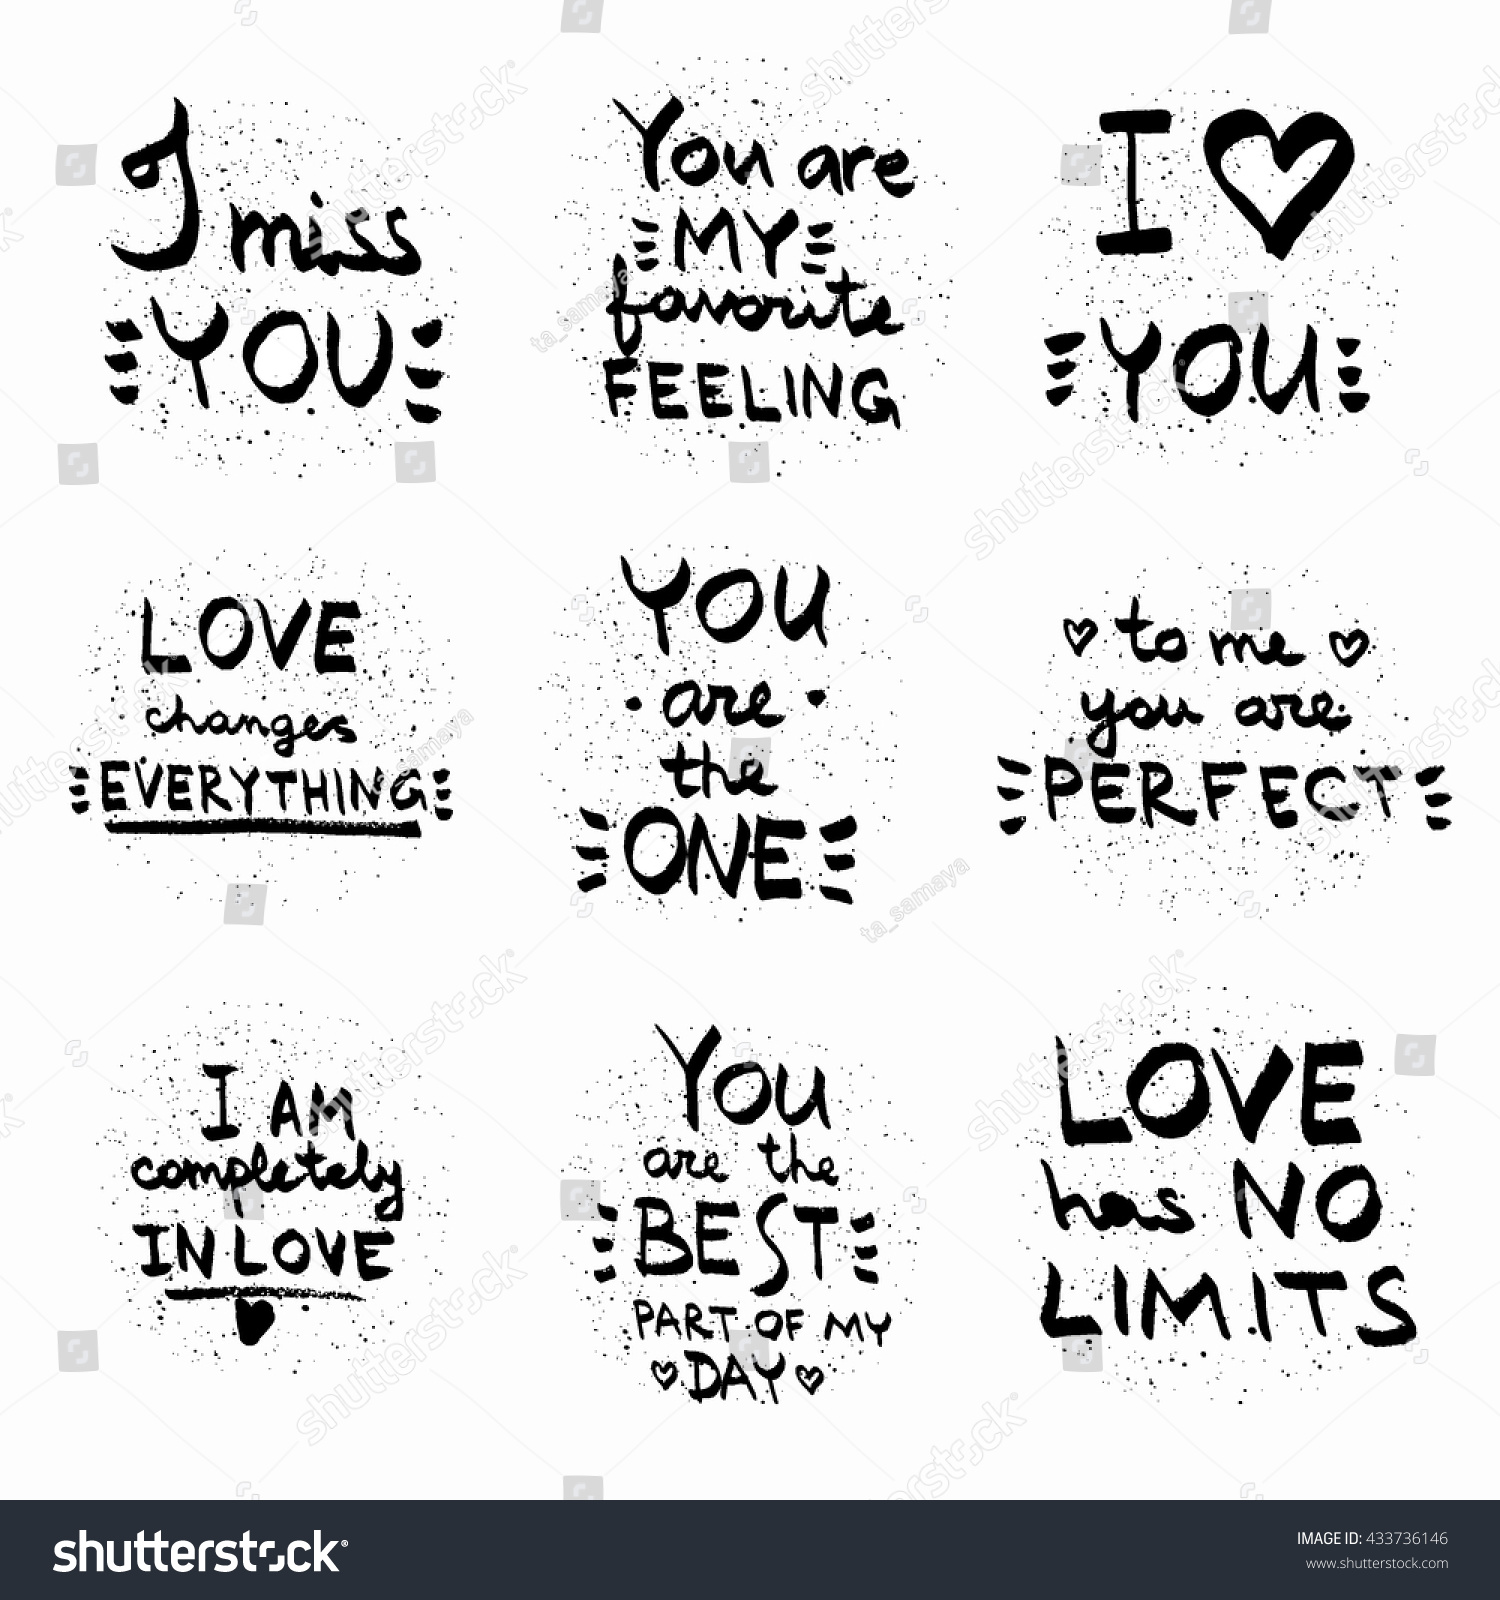 Black Love Quotes And Pictures | Love Quotes Black On White Vector Text Stock Vektorgrafik